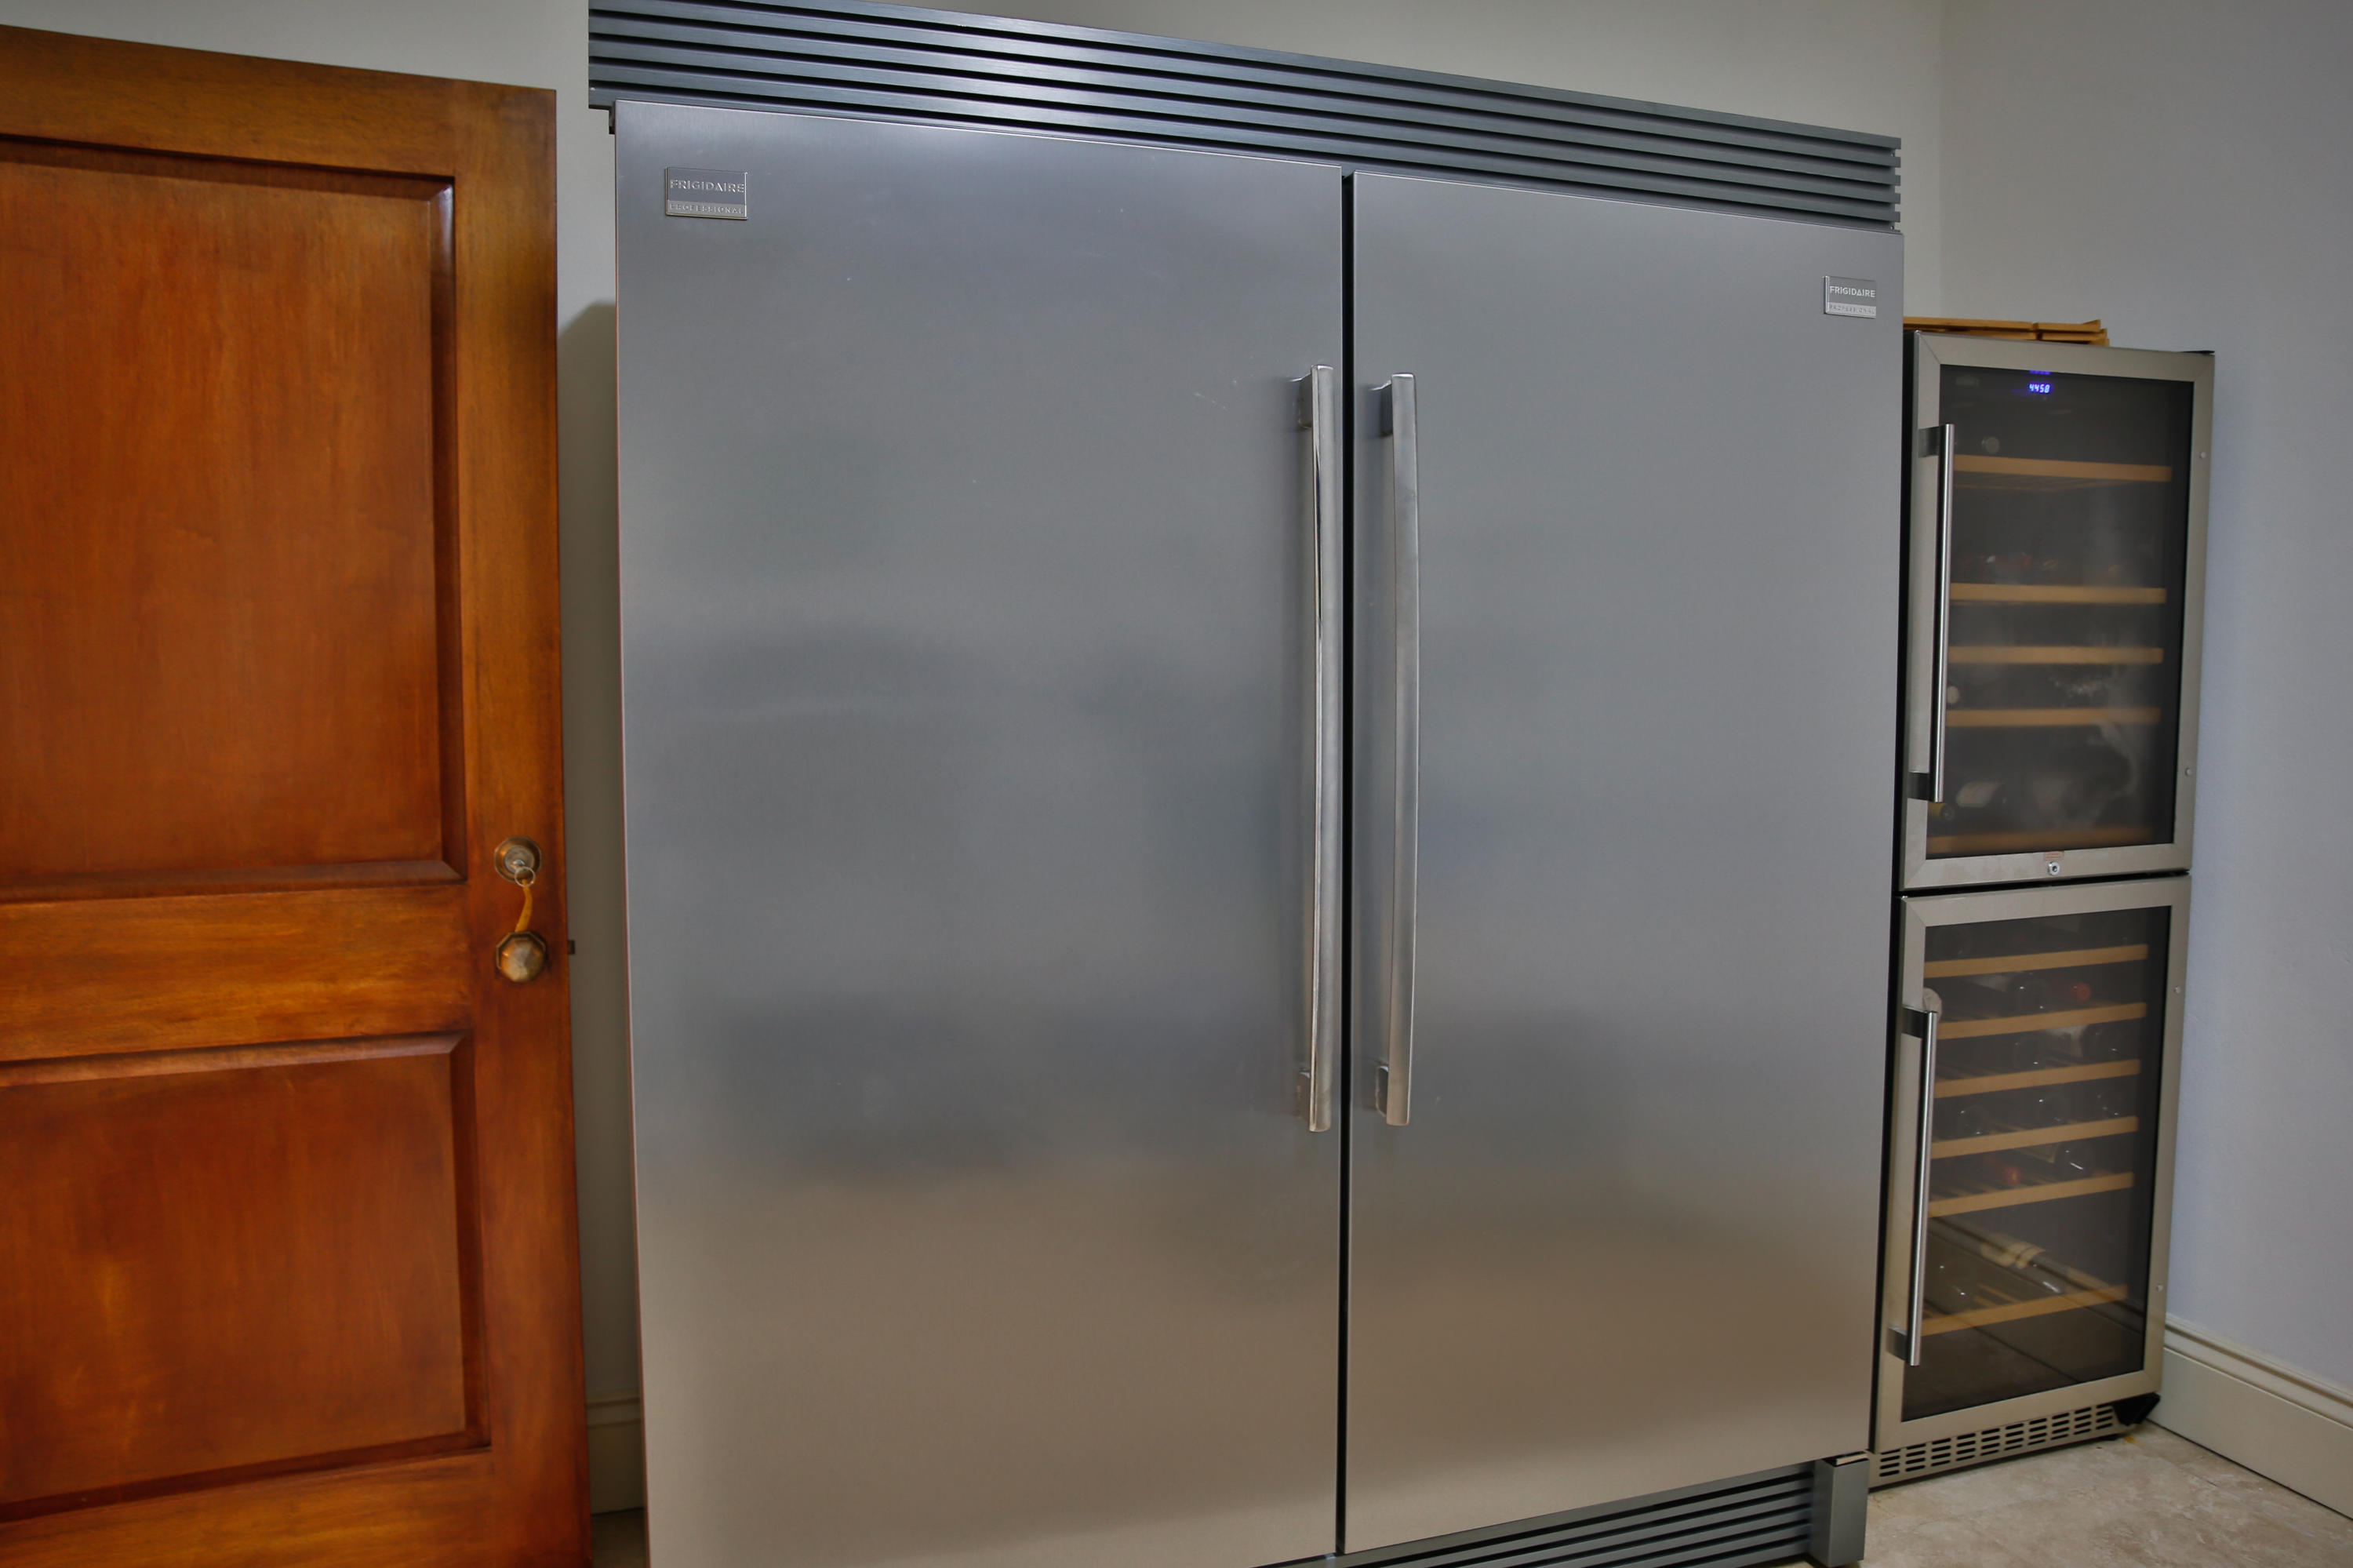 Plenty of space in this refrigerator